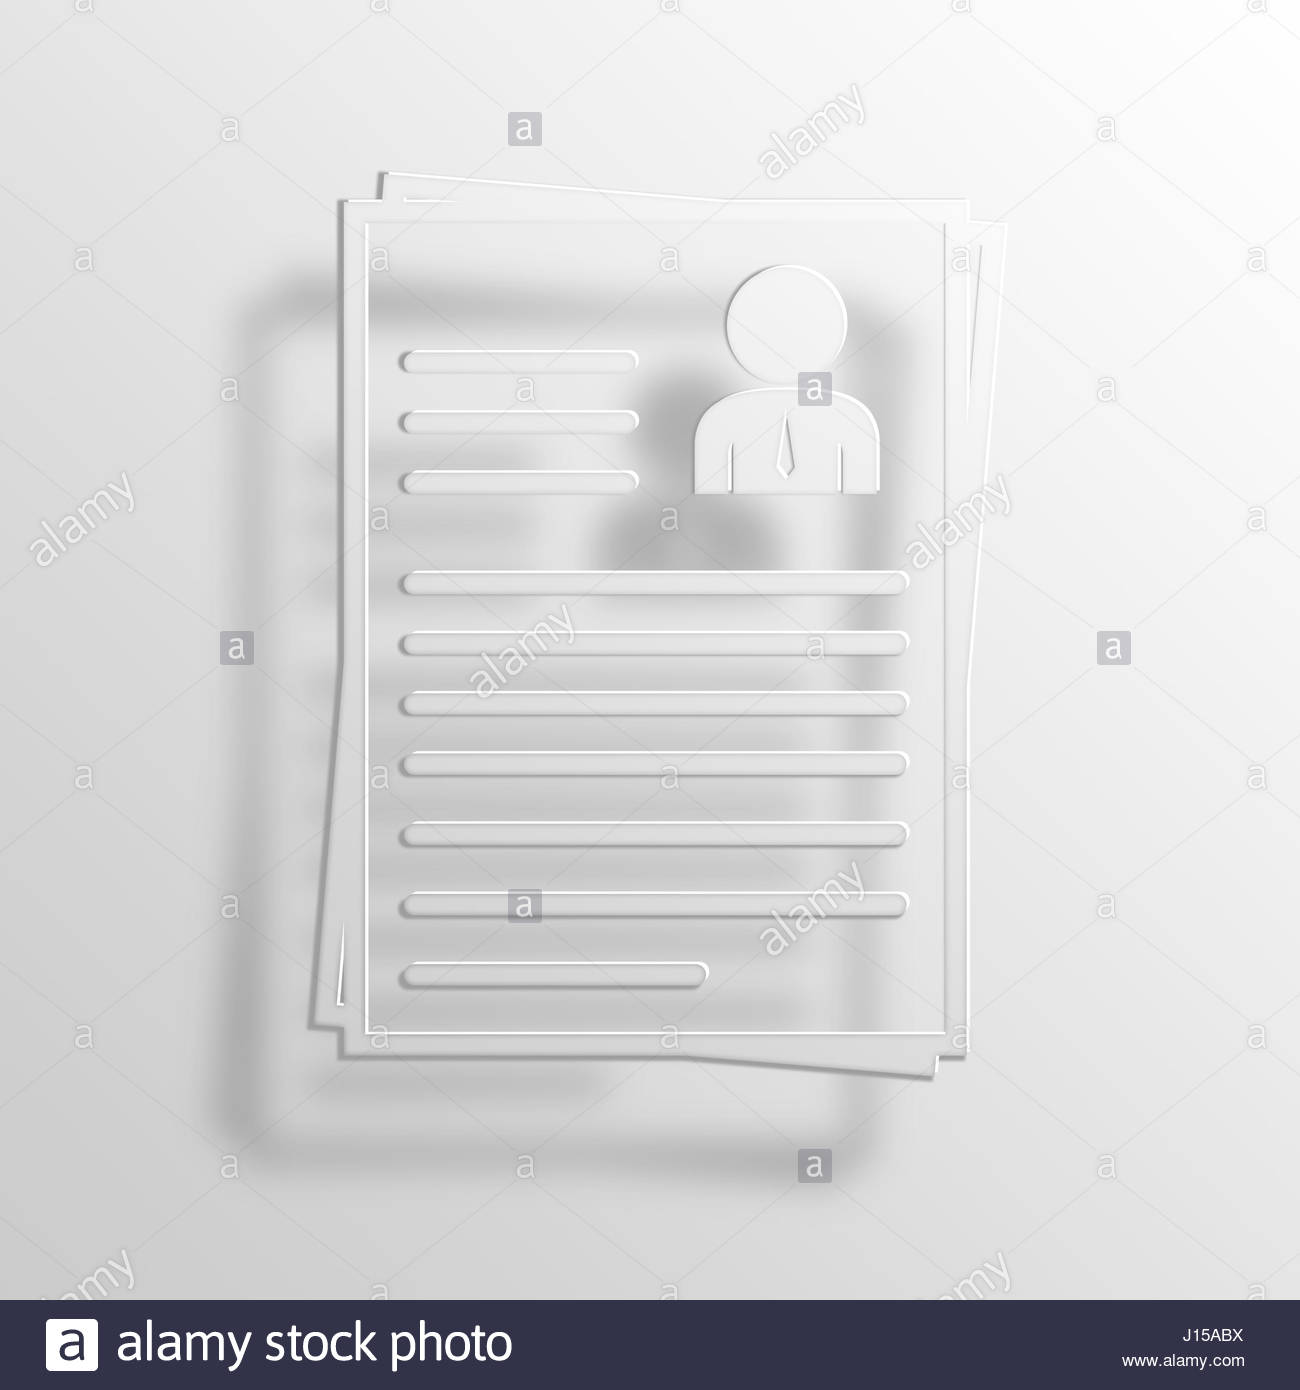 resume 3d paper icon symbol business concept no 13644 stock photo